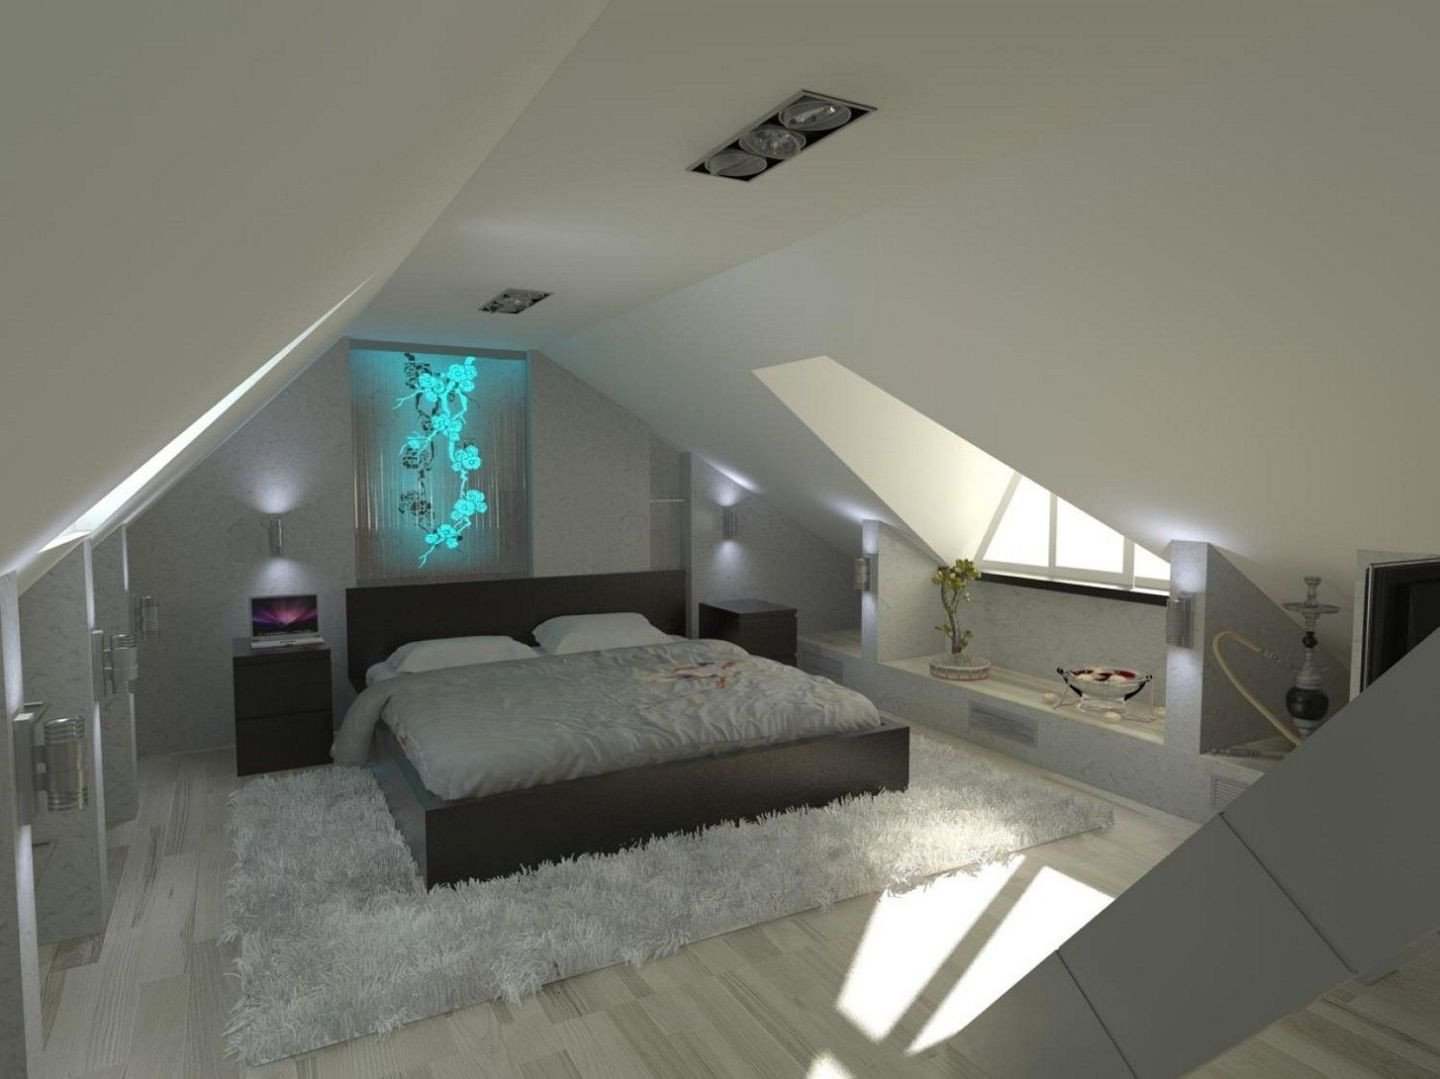 Bedroom Design Photo Gallery Fresh Small attic Bedroom Storage Ideas